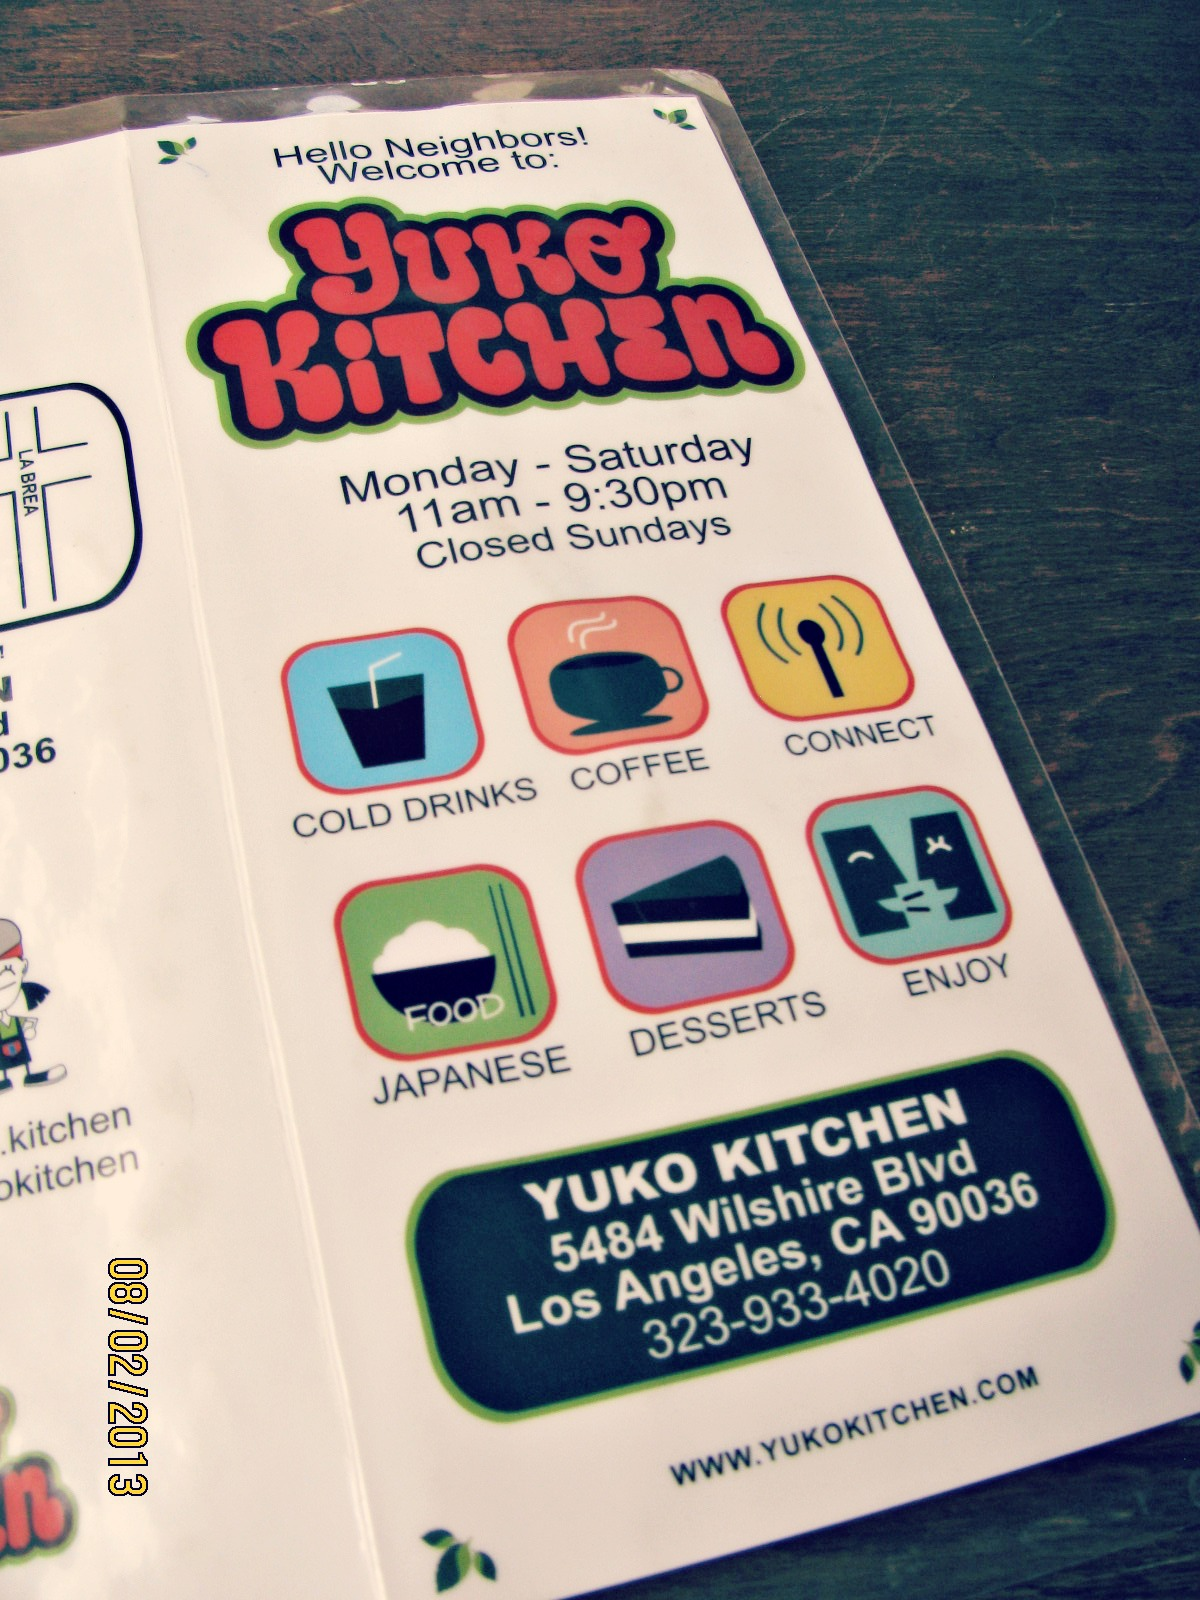 Yuko Kitchen Cafe // Address & Hours